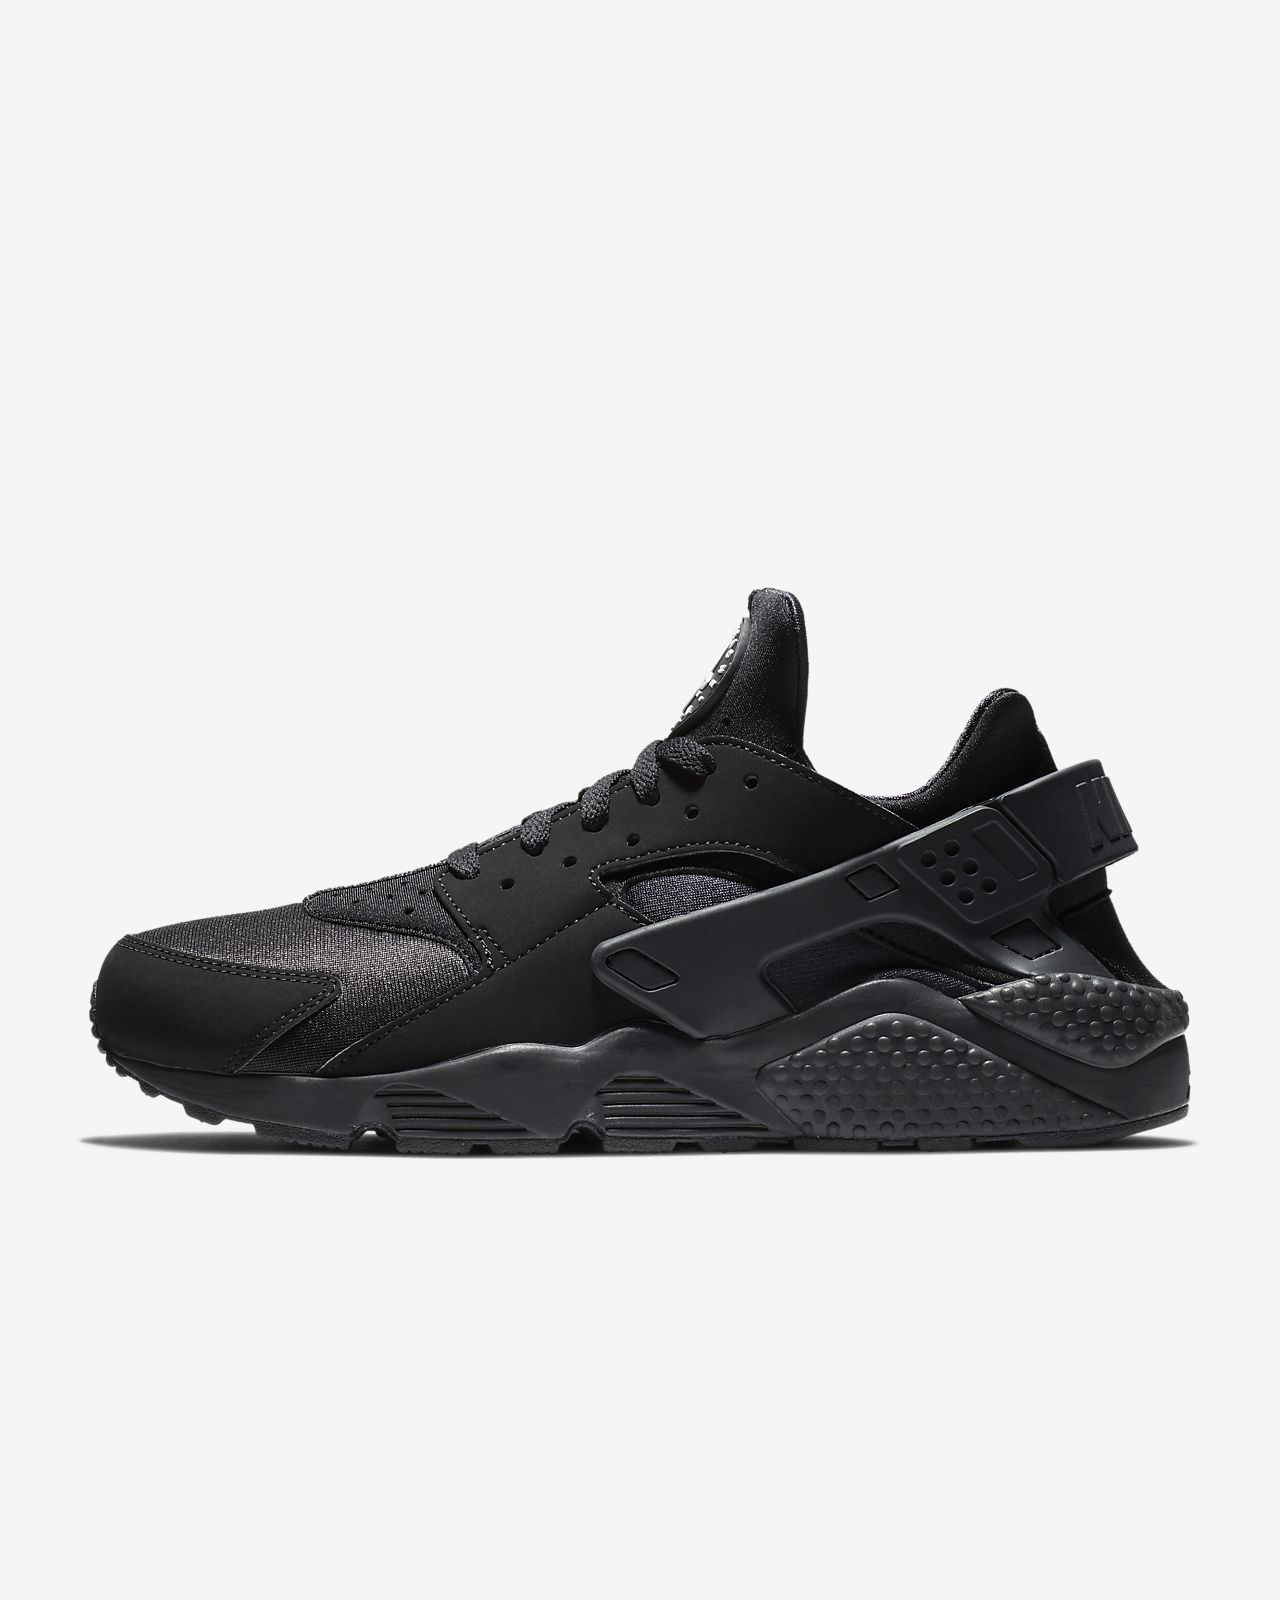 Nike sweatshirt sale, nike air huarache run ultra frauen